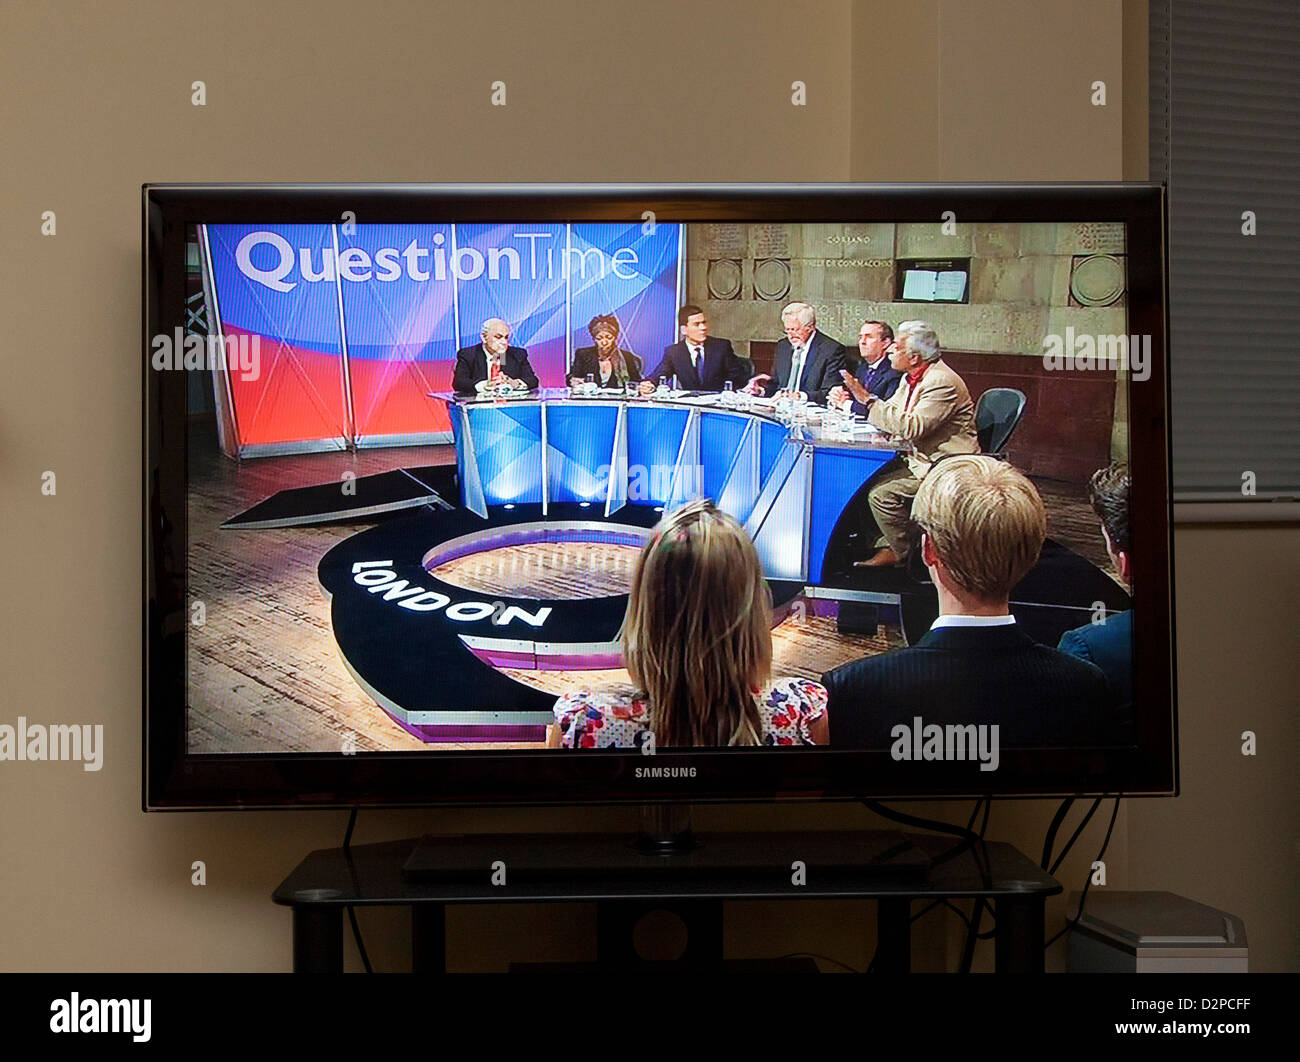 BBC Question Time programme in UK - Stock Image